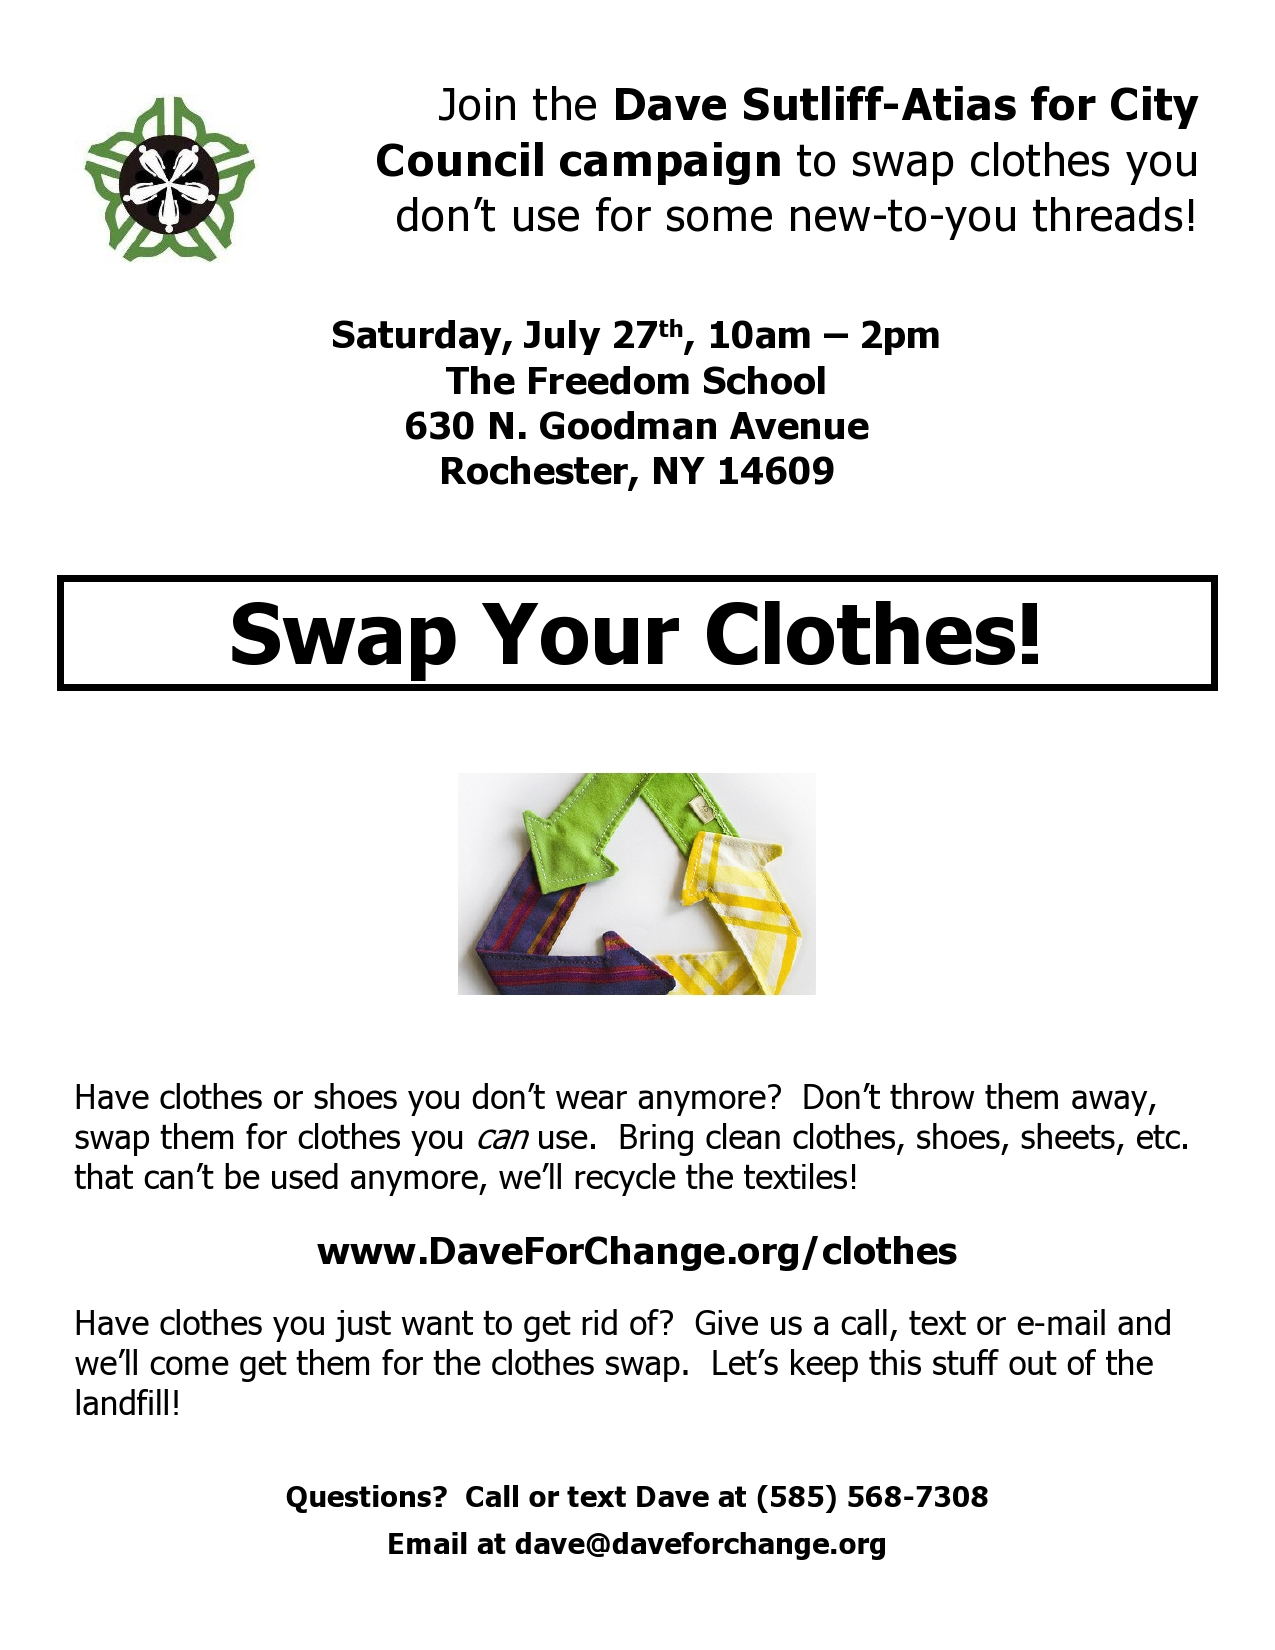 A flyer for Dave's Clothing Swap